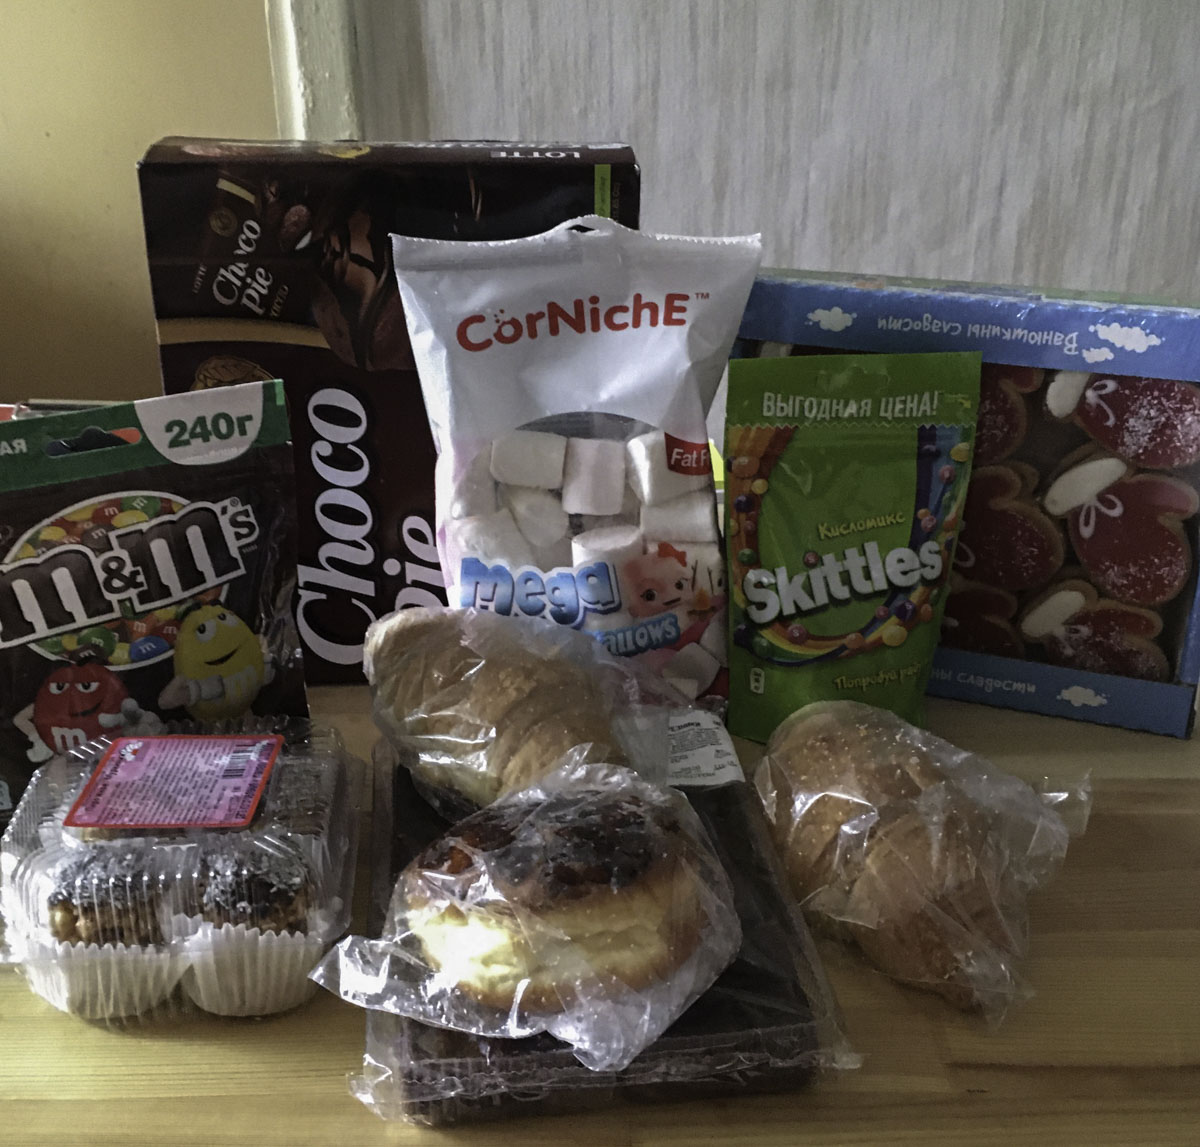 Wagon Wheels, M&M's, Skittles, ChocoPie, Marshmallow и другие сладости